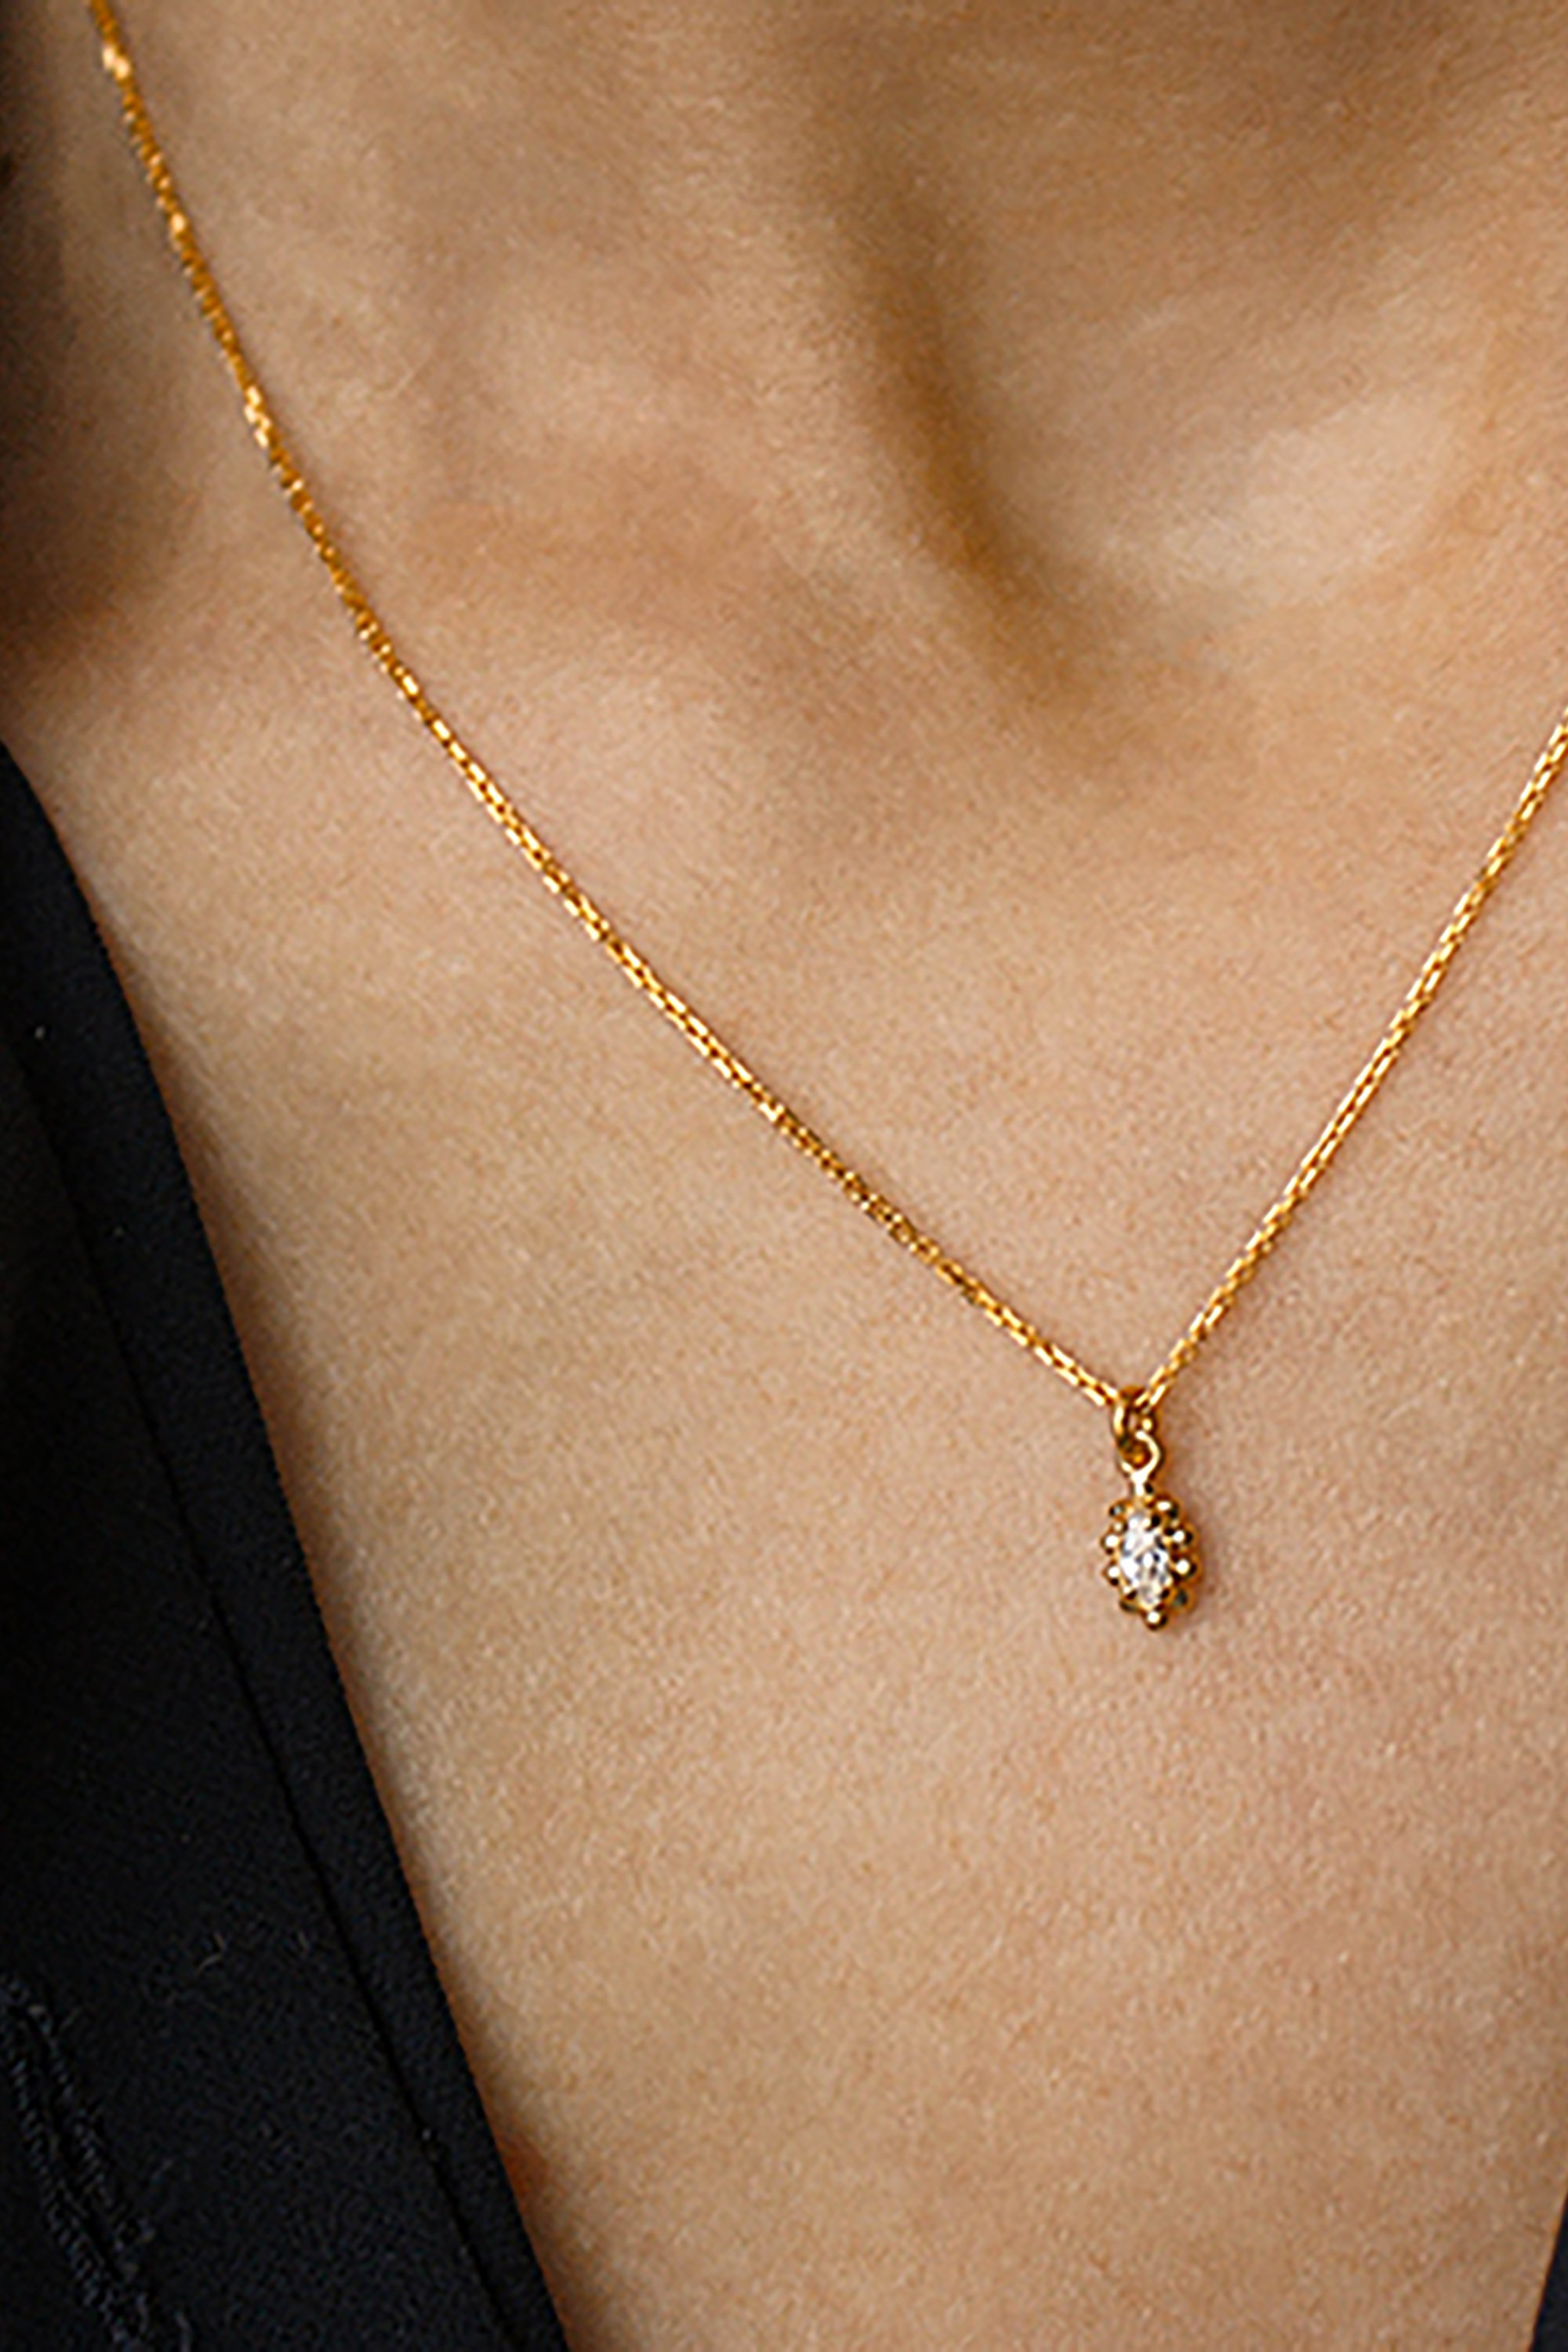 Nori necklace gold from thegreenlabels.com